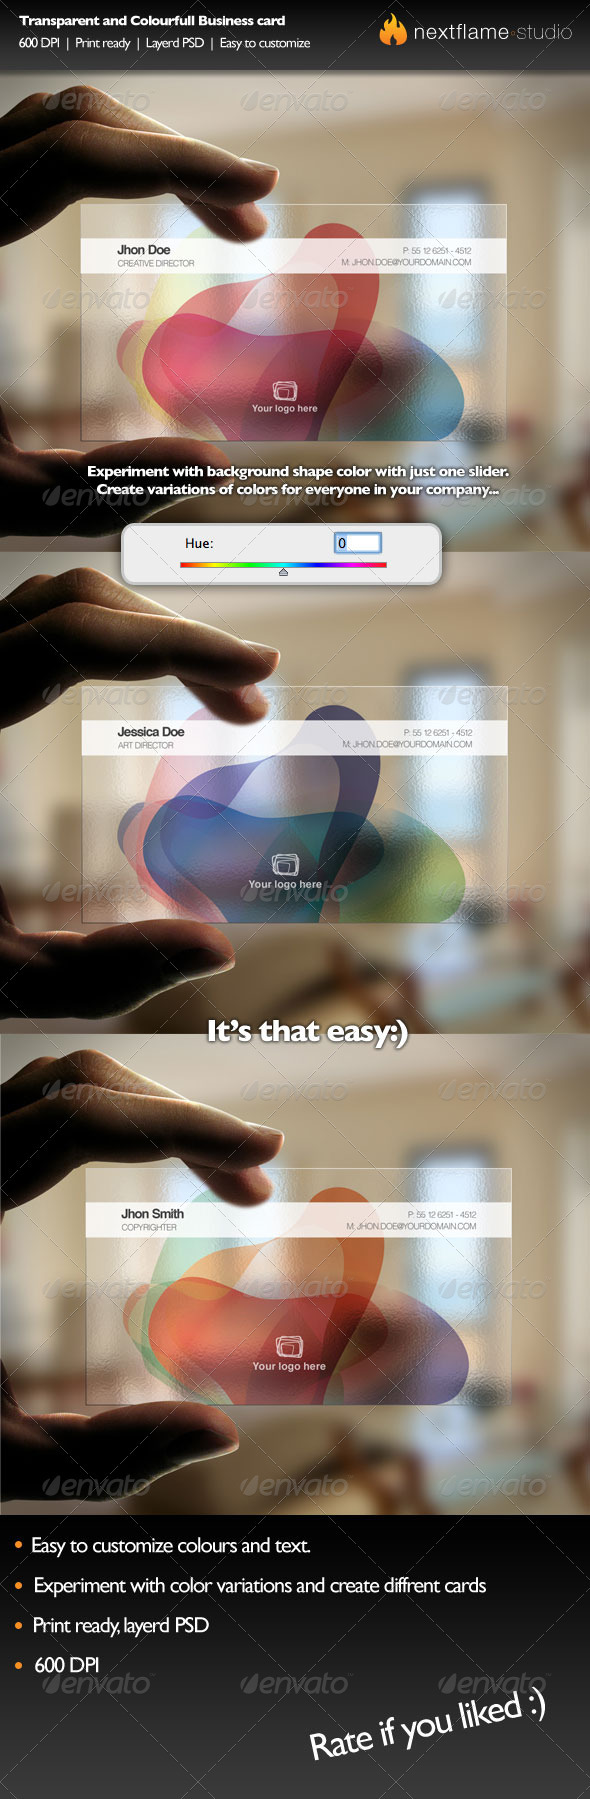 transparent, colorful business card template